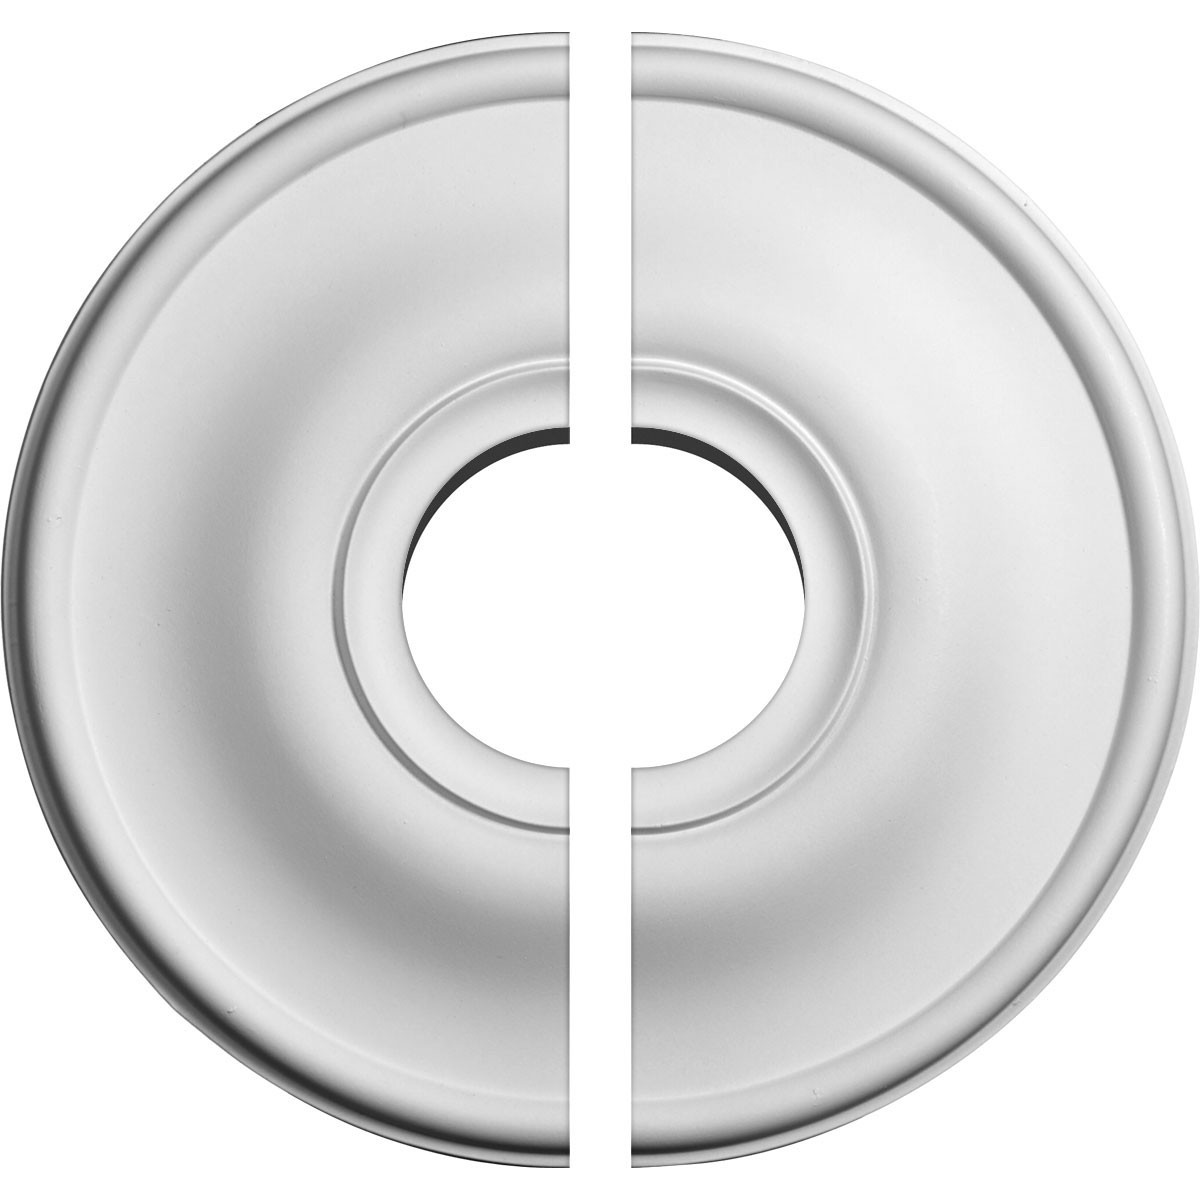 "EM-CM12JE2-03500 - 11 3/4""OD x 3 1/2""ID x 3/8""P Jefferson Ceiling Medallion, Two Piece (Fits Canopies up to 3 1/2"")"